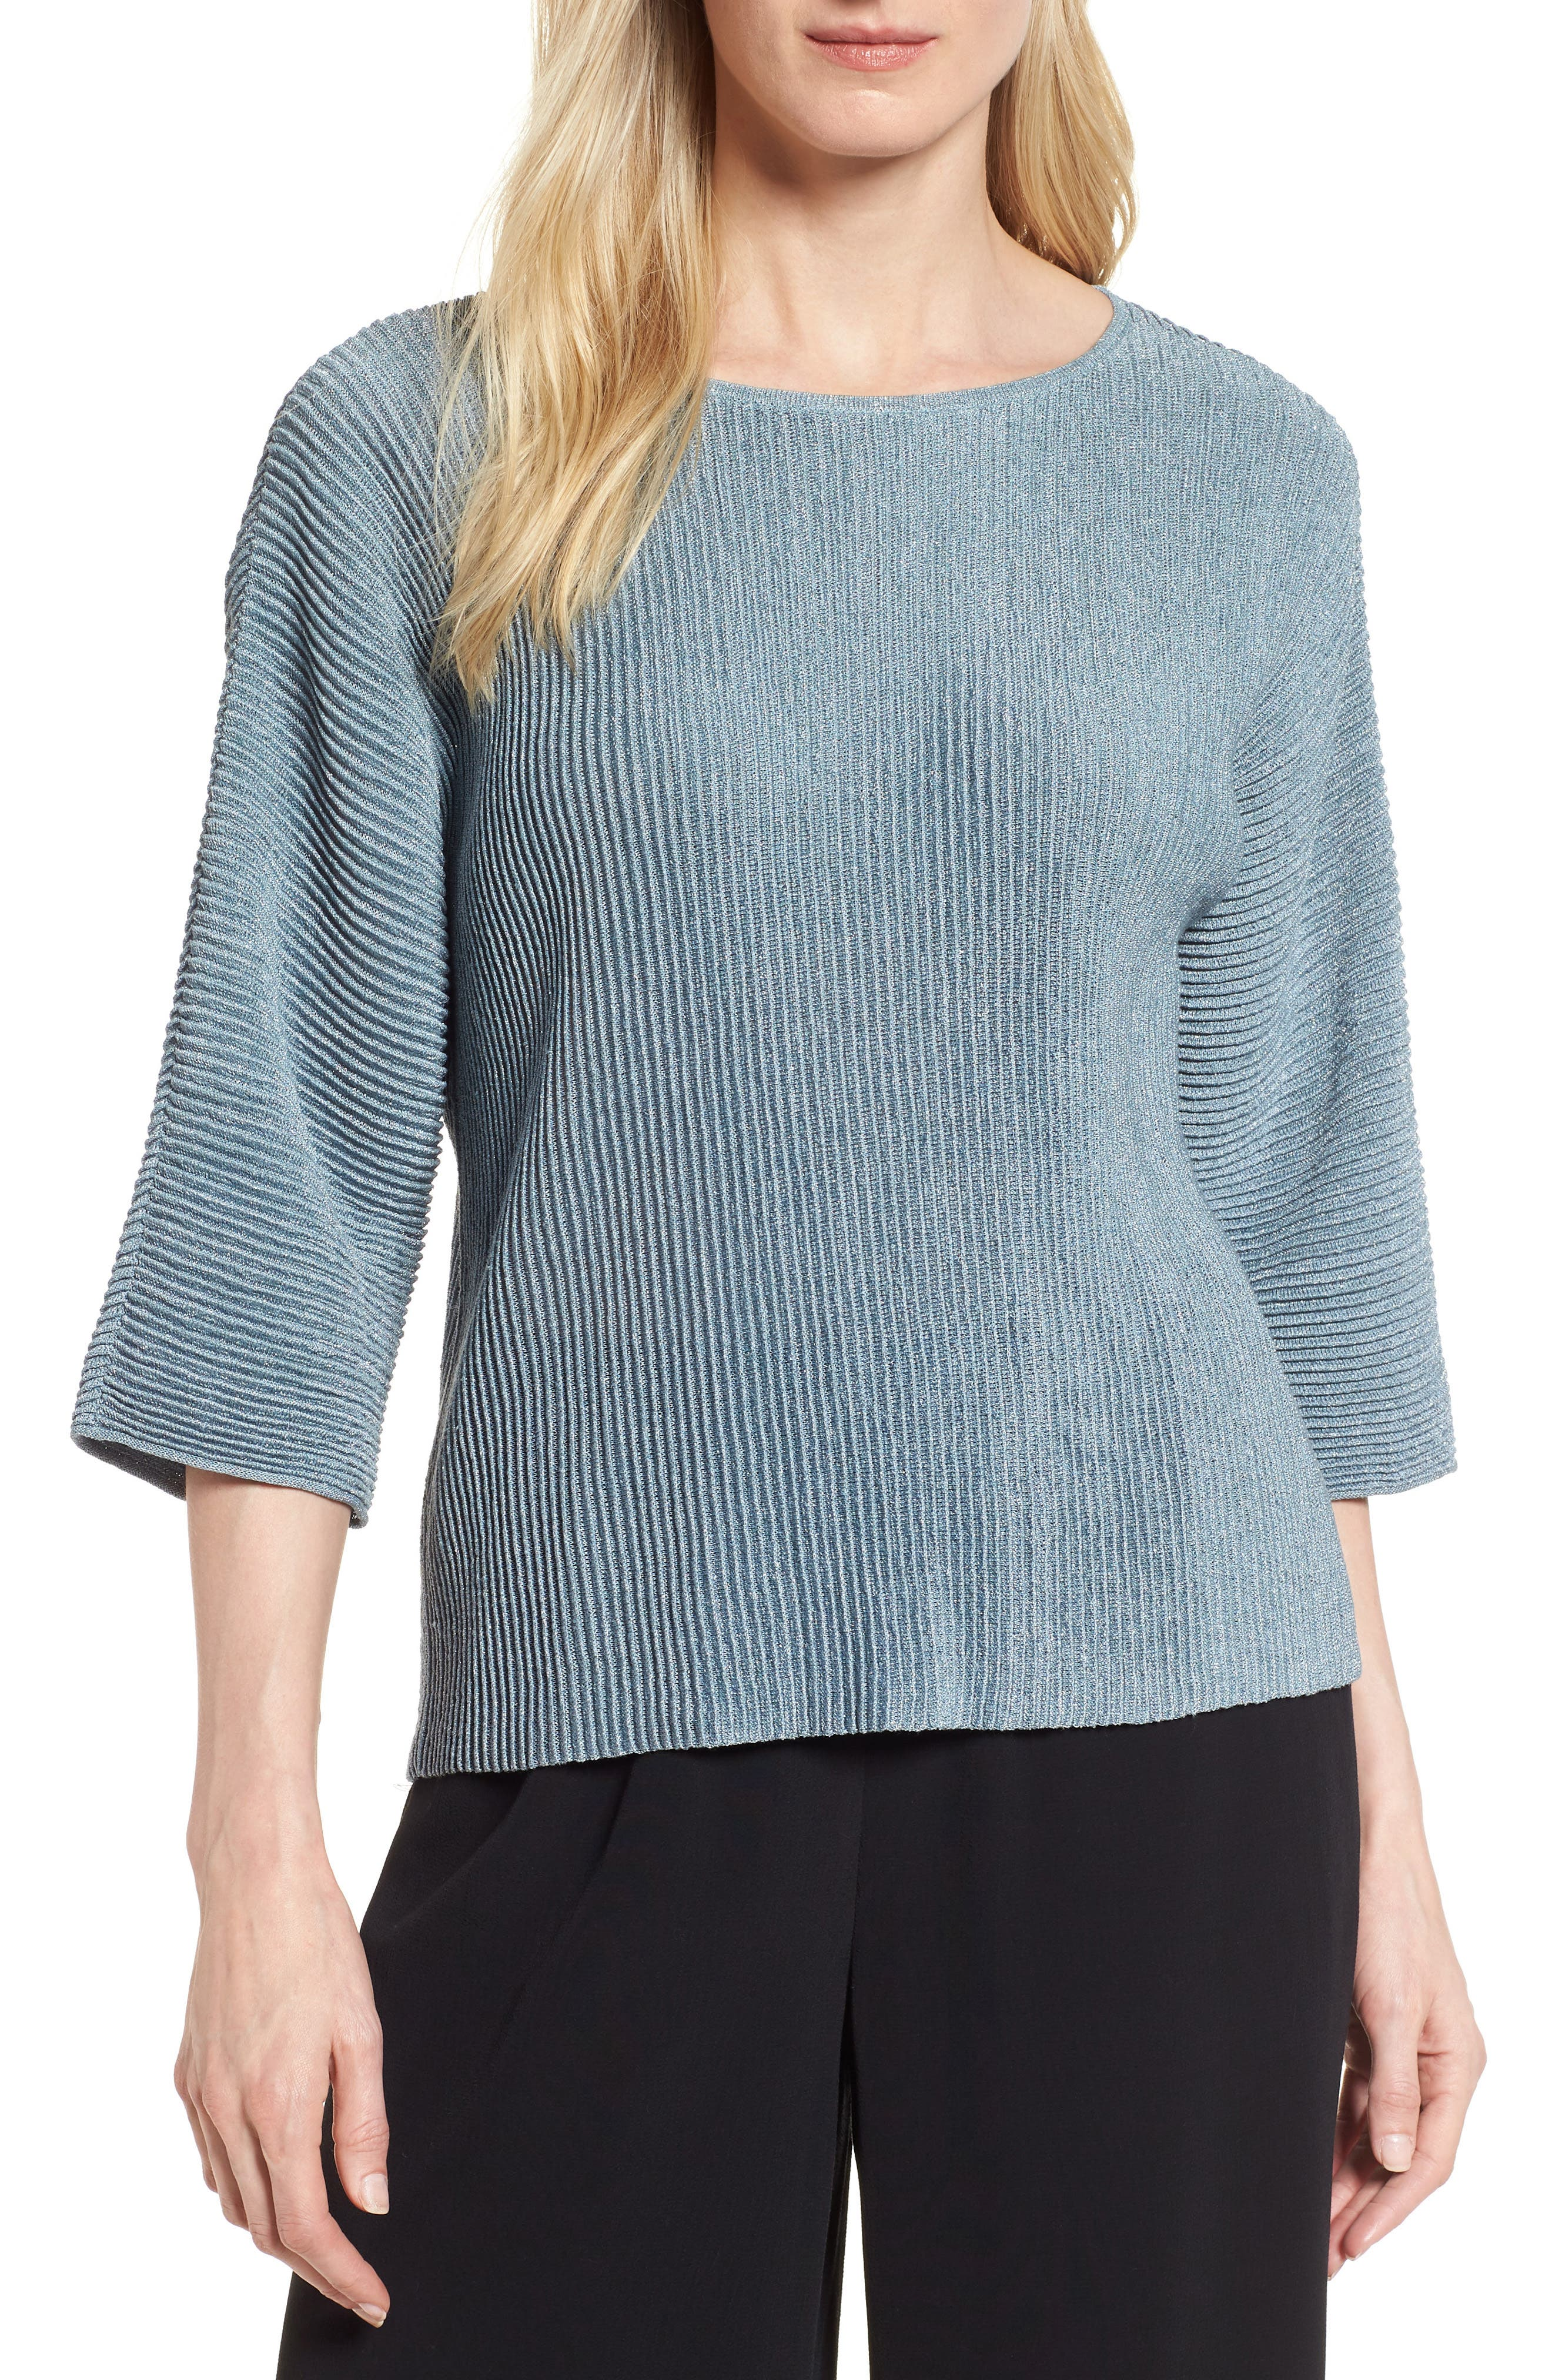 Metallic Hemp Blend Sweater,                         Main,                         color, Blue Steel